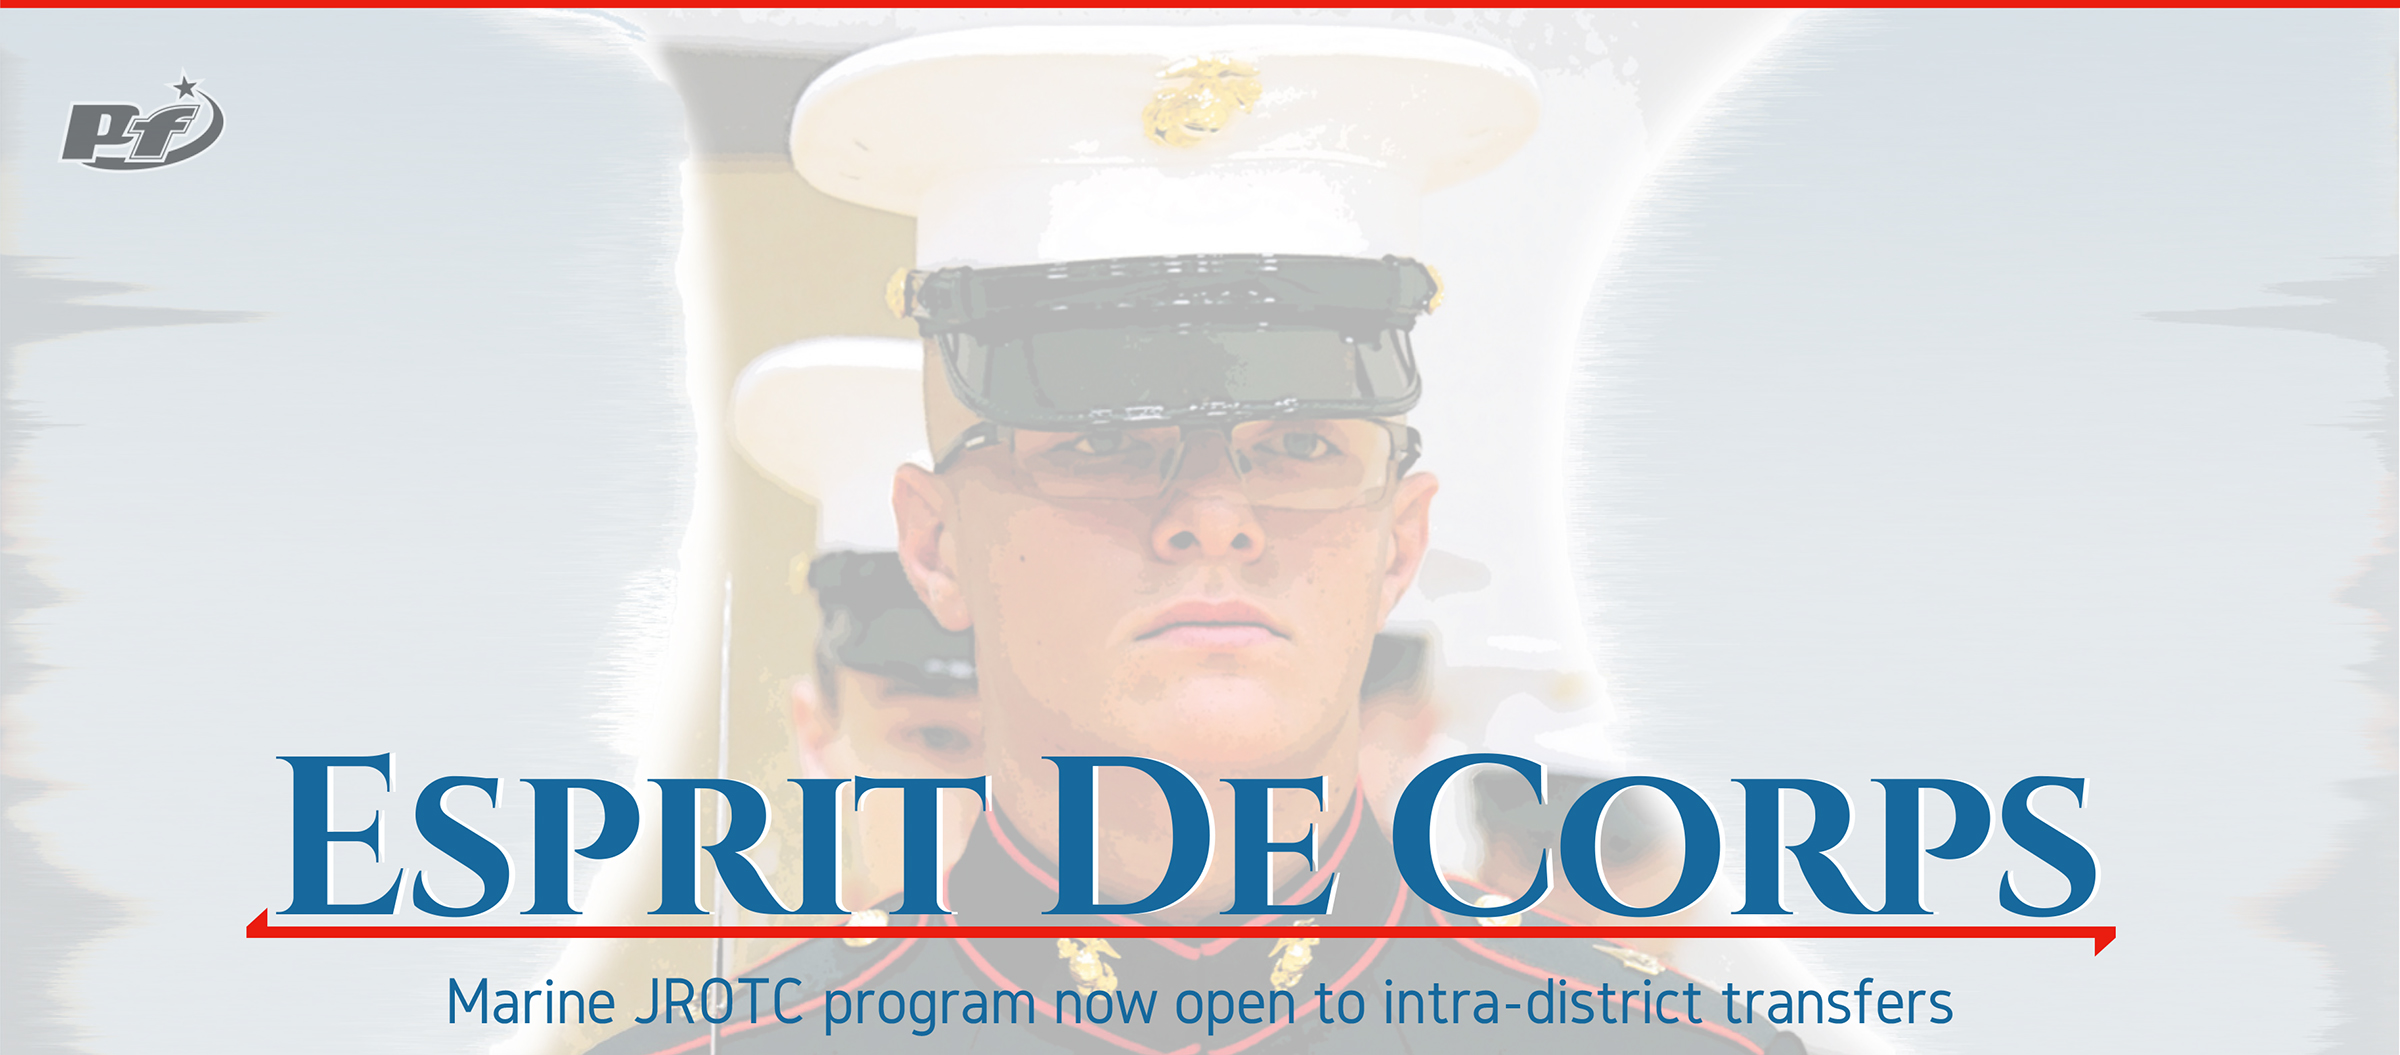 Marine JROTC program focuses on leadership